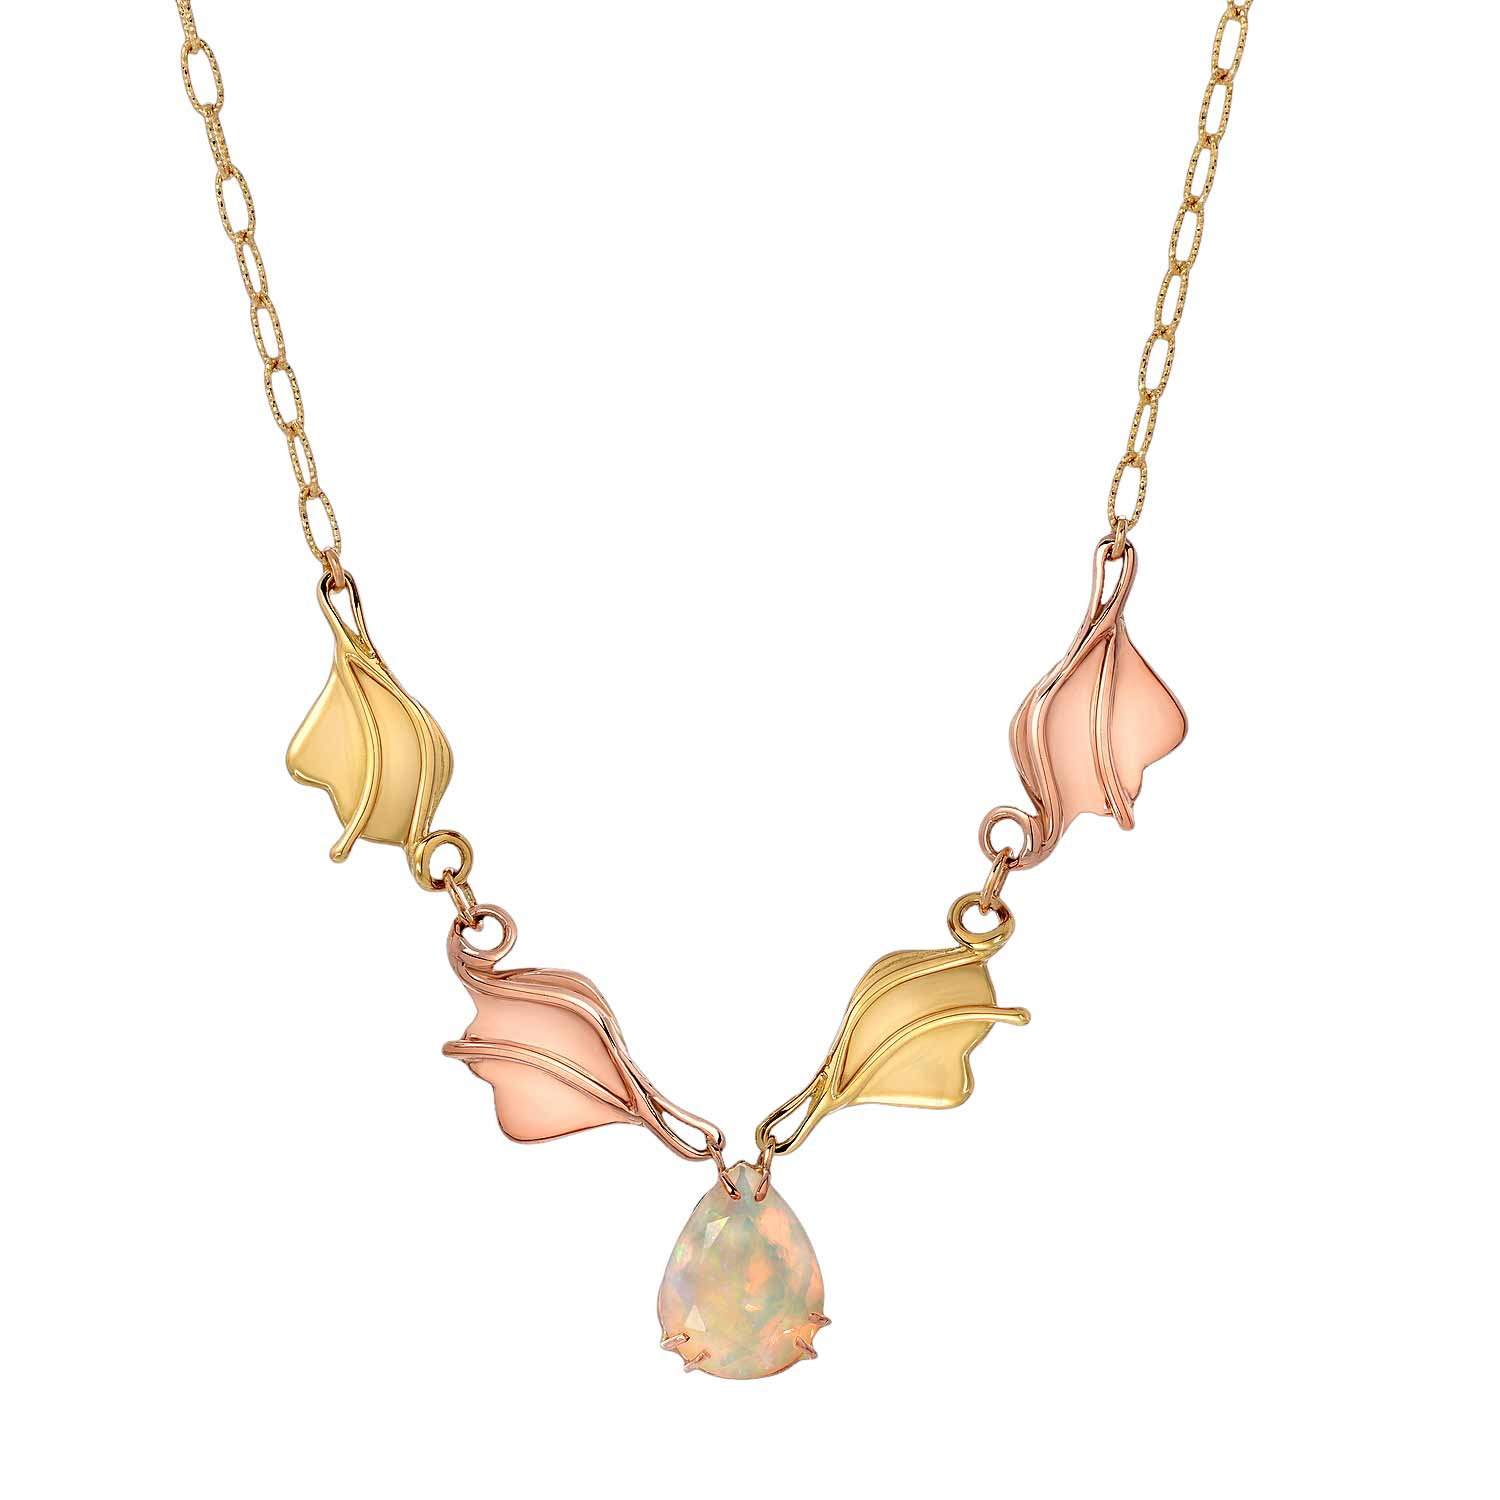 Opal Nectar Necklace